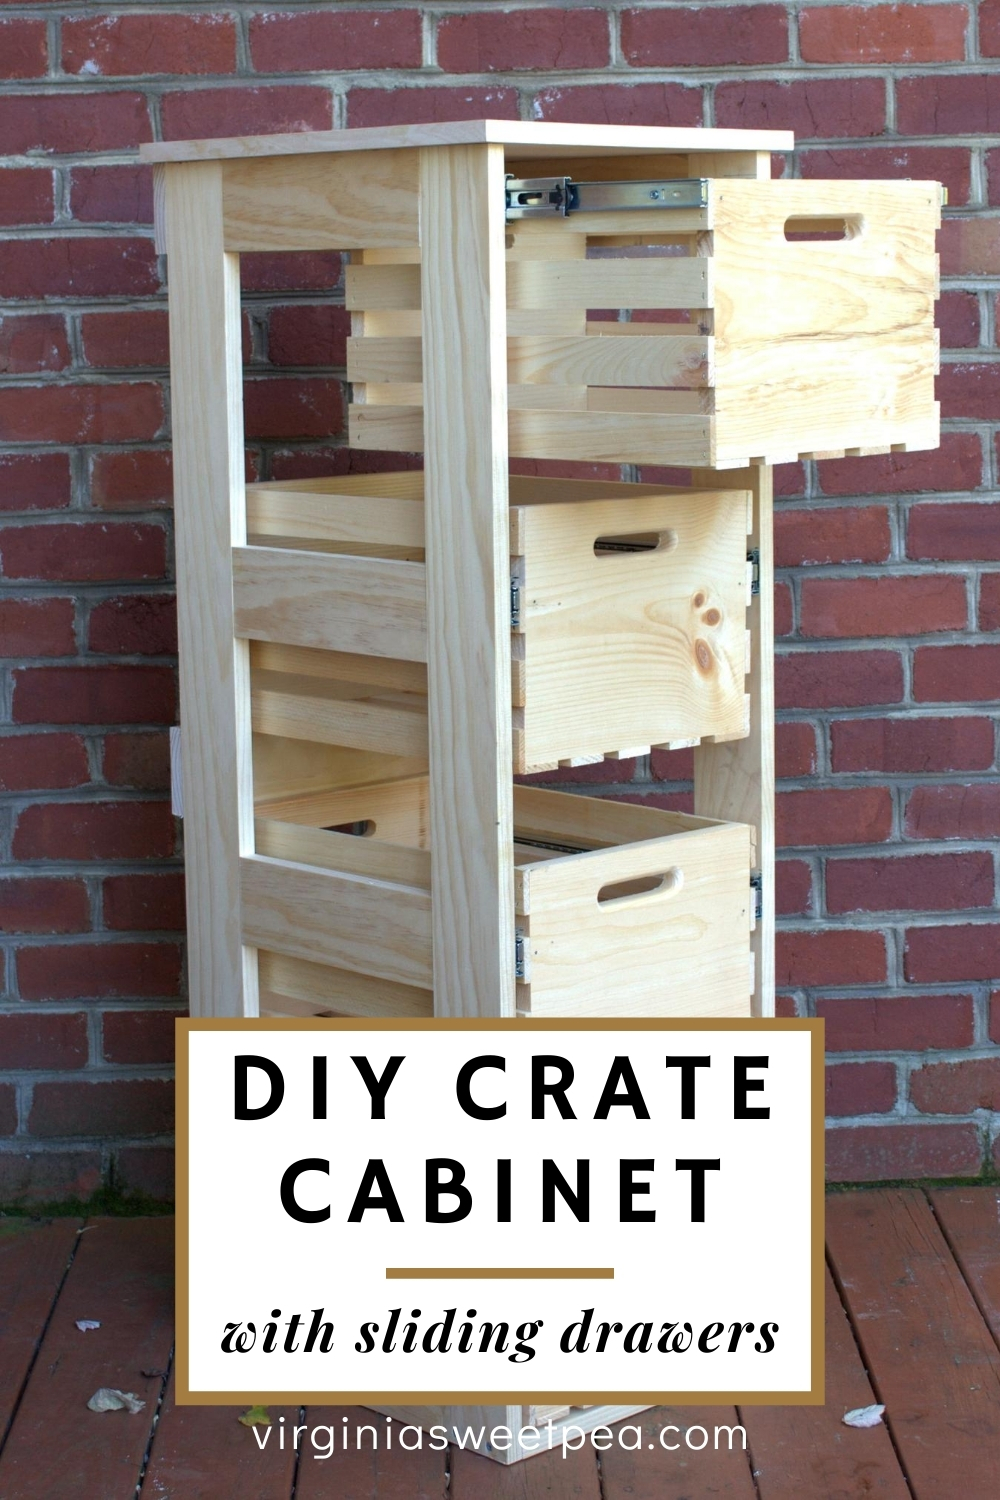 DIY Crate Cabinet with Sliding Drawers - Learn how to use wooden crates to create a crate cabinet. This is handy for storing so many things. #crateproject #cratecabinet #diyproject #woodworking via @spaula